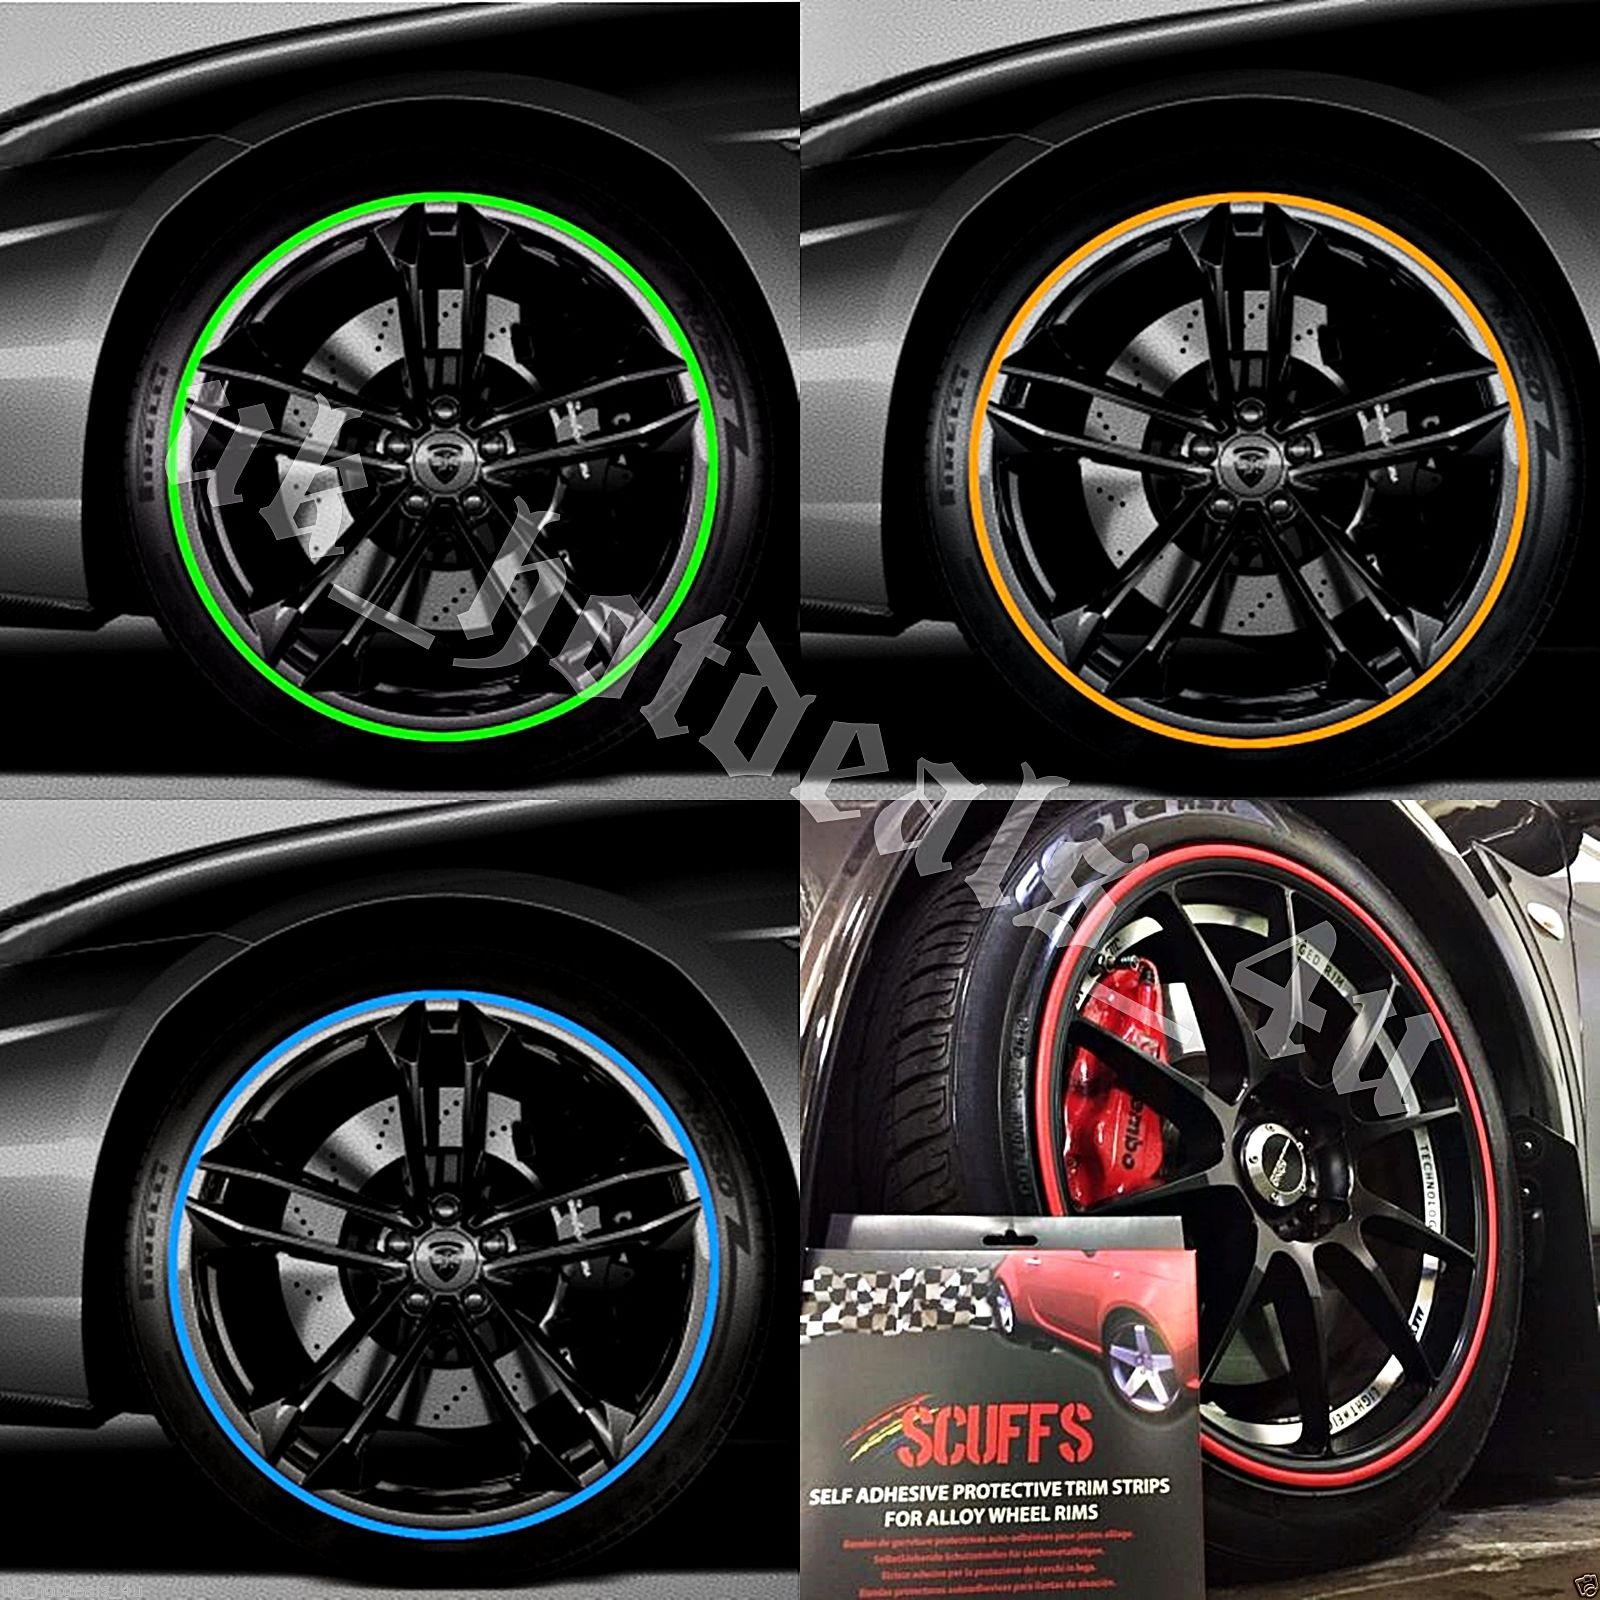 SCUFFS by Rimblades Car Tuning Alloy Wheel Rim Protectors Tire Guard Line Rubber